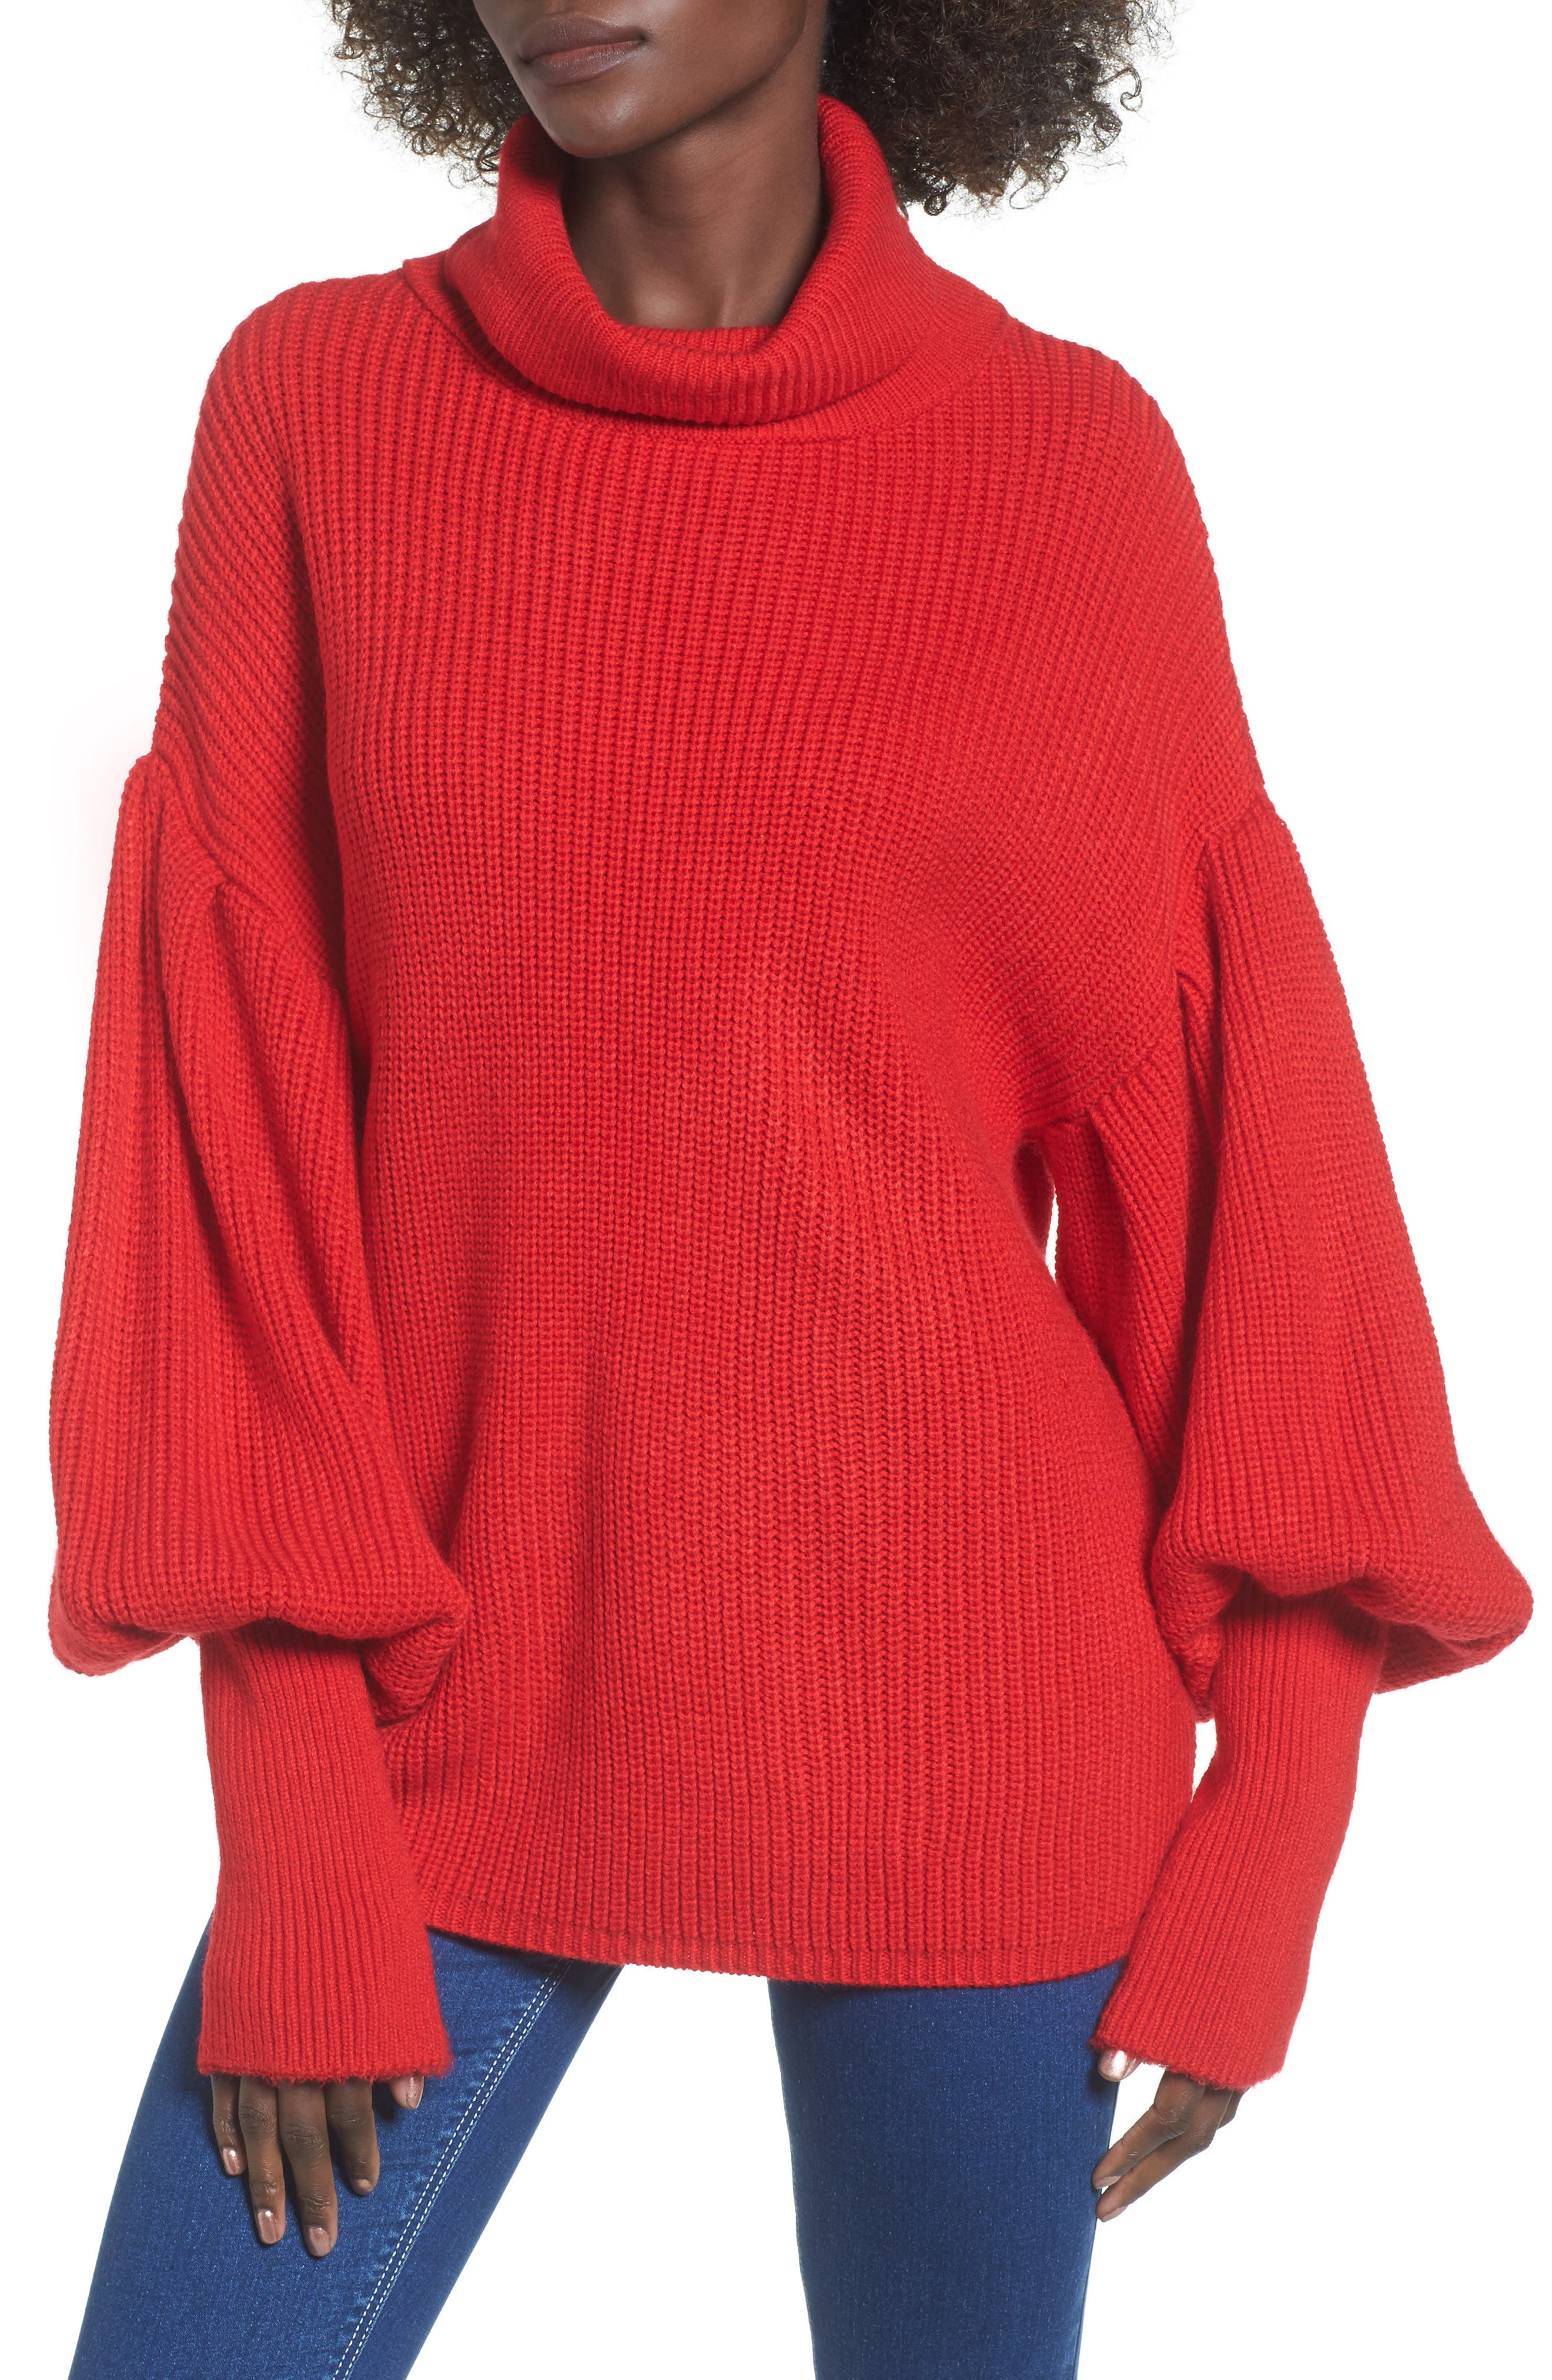 Balloon Sleeve Turtleneck Sweater,                         Main,                         color, Red